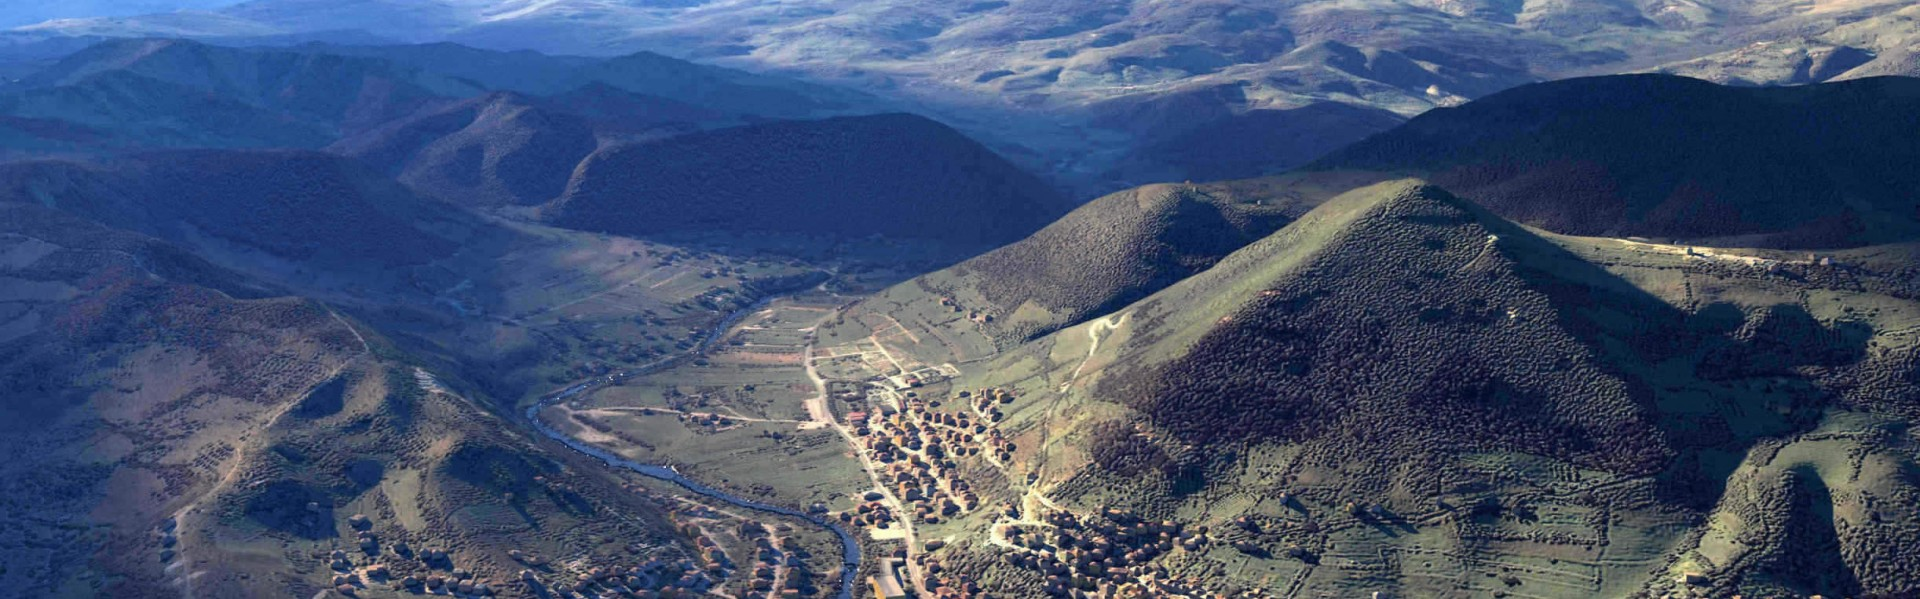 Bosnian-Valley-of-Pyramids